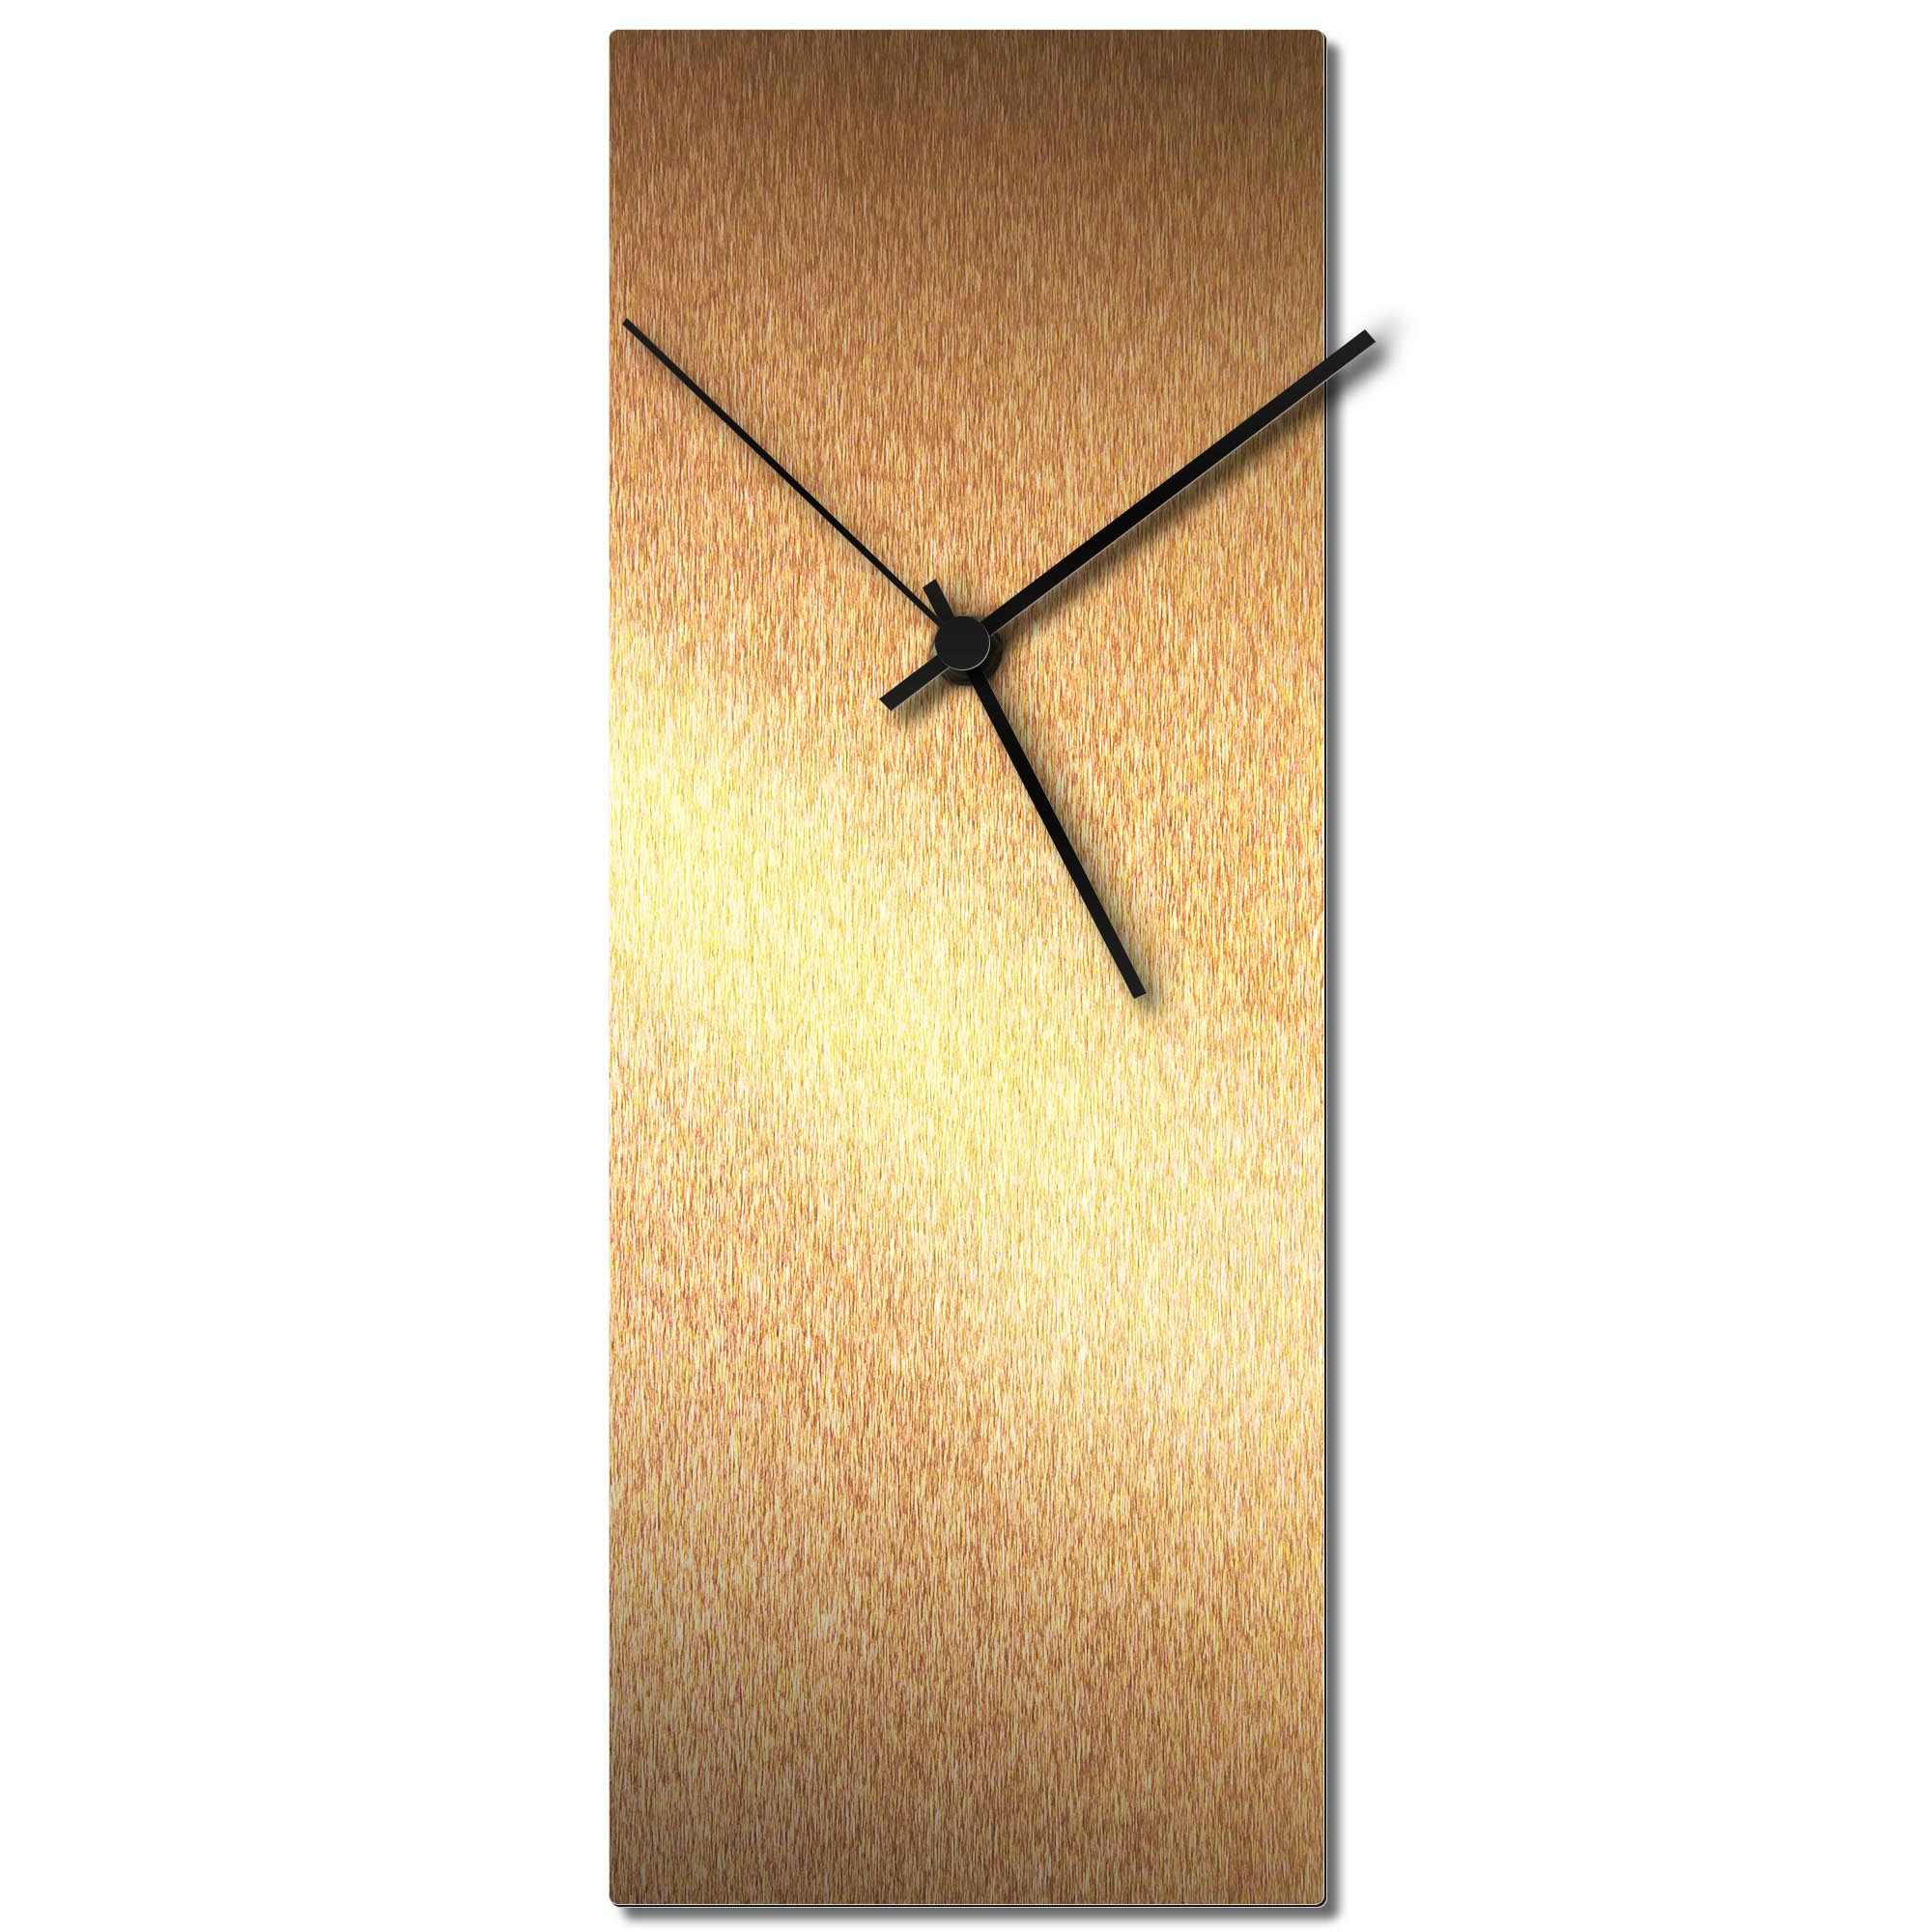 Adam Schwoeppe 'Bronzesmith Clock Large Black' Midcentury Modern Style Wall Clock